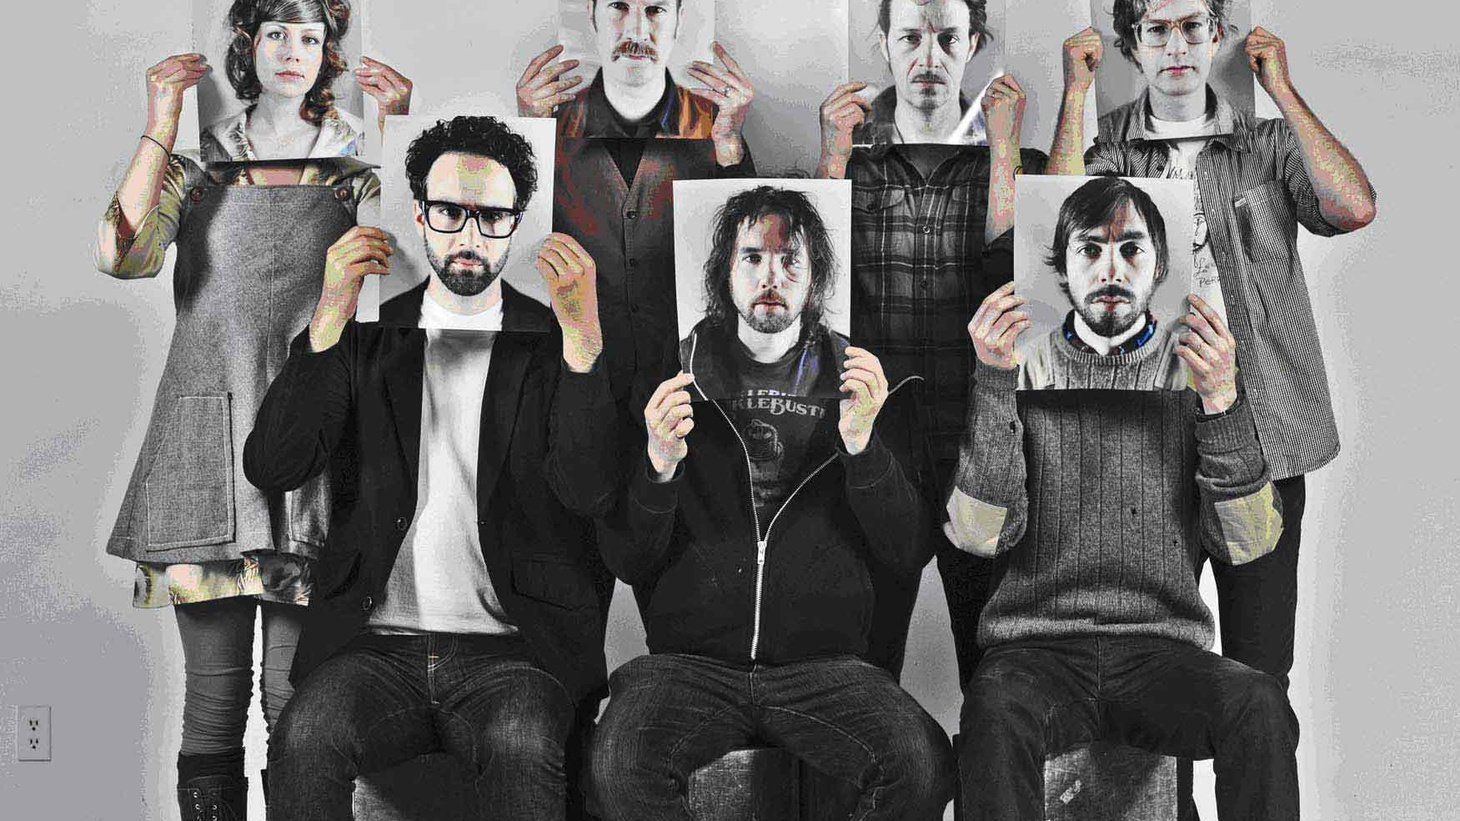 Broken Social Scene is one of Canada's most celebrated indie rock collectives and their many members will play musical chairs as they share a batch of new songs on Morning Becomes Eclectic at 11:15am.